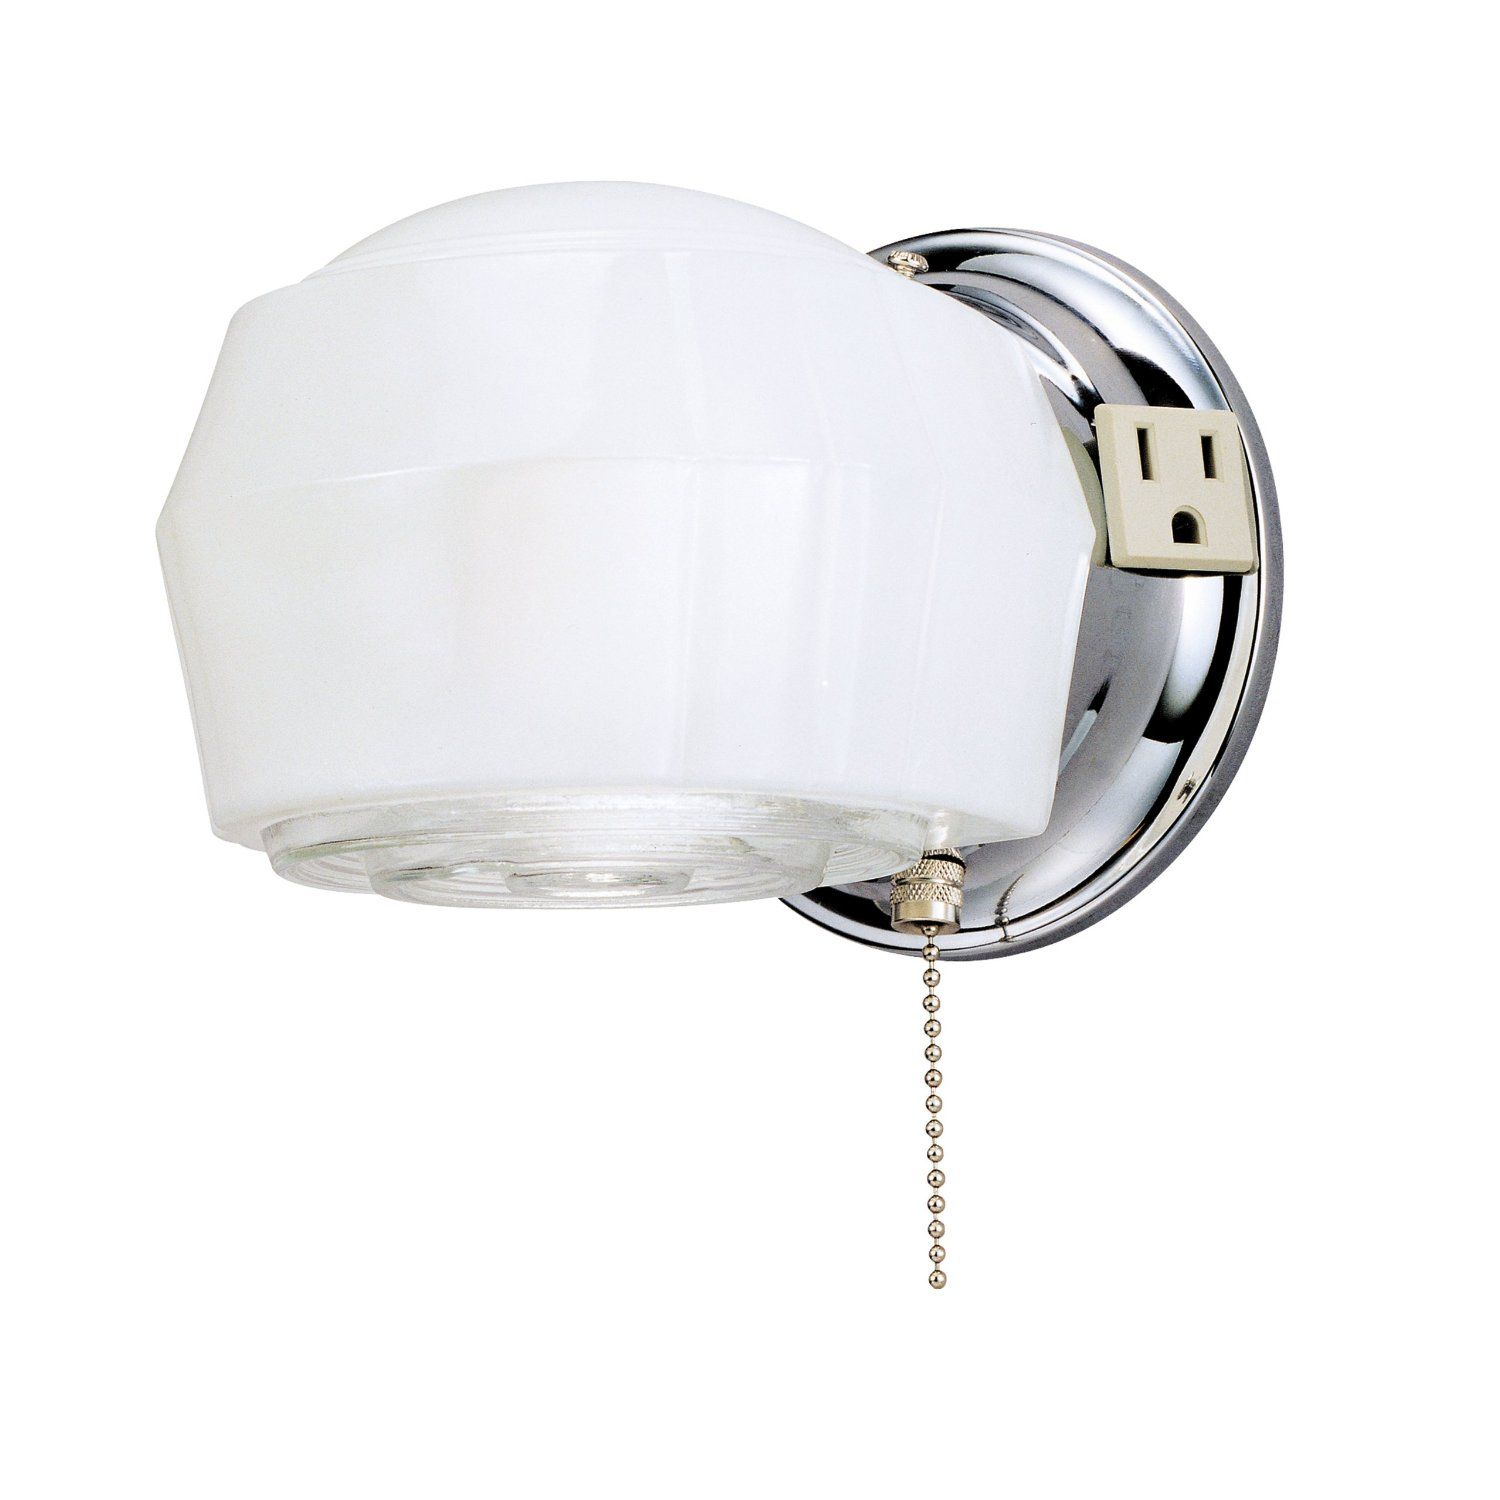 Bathroom Light With Outlet Westinghouse 66402 5 1 4